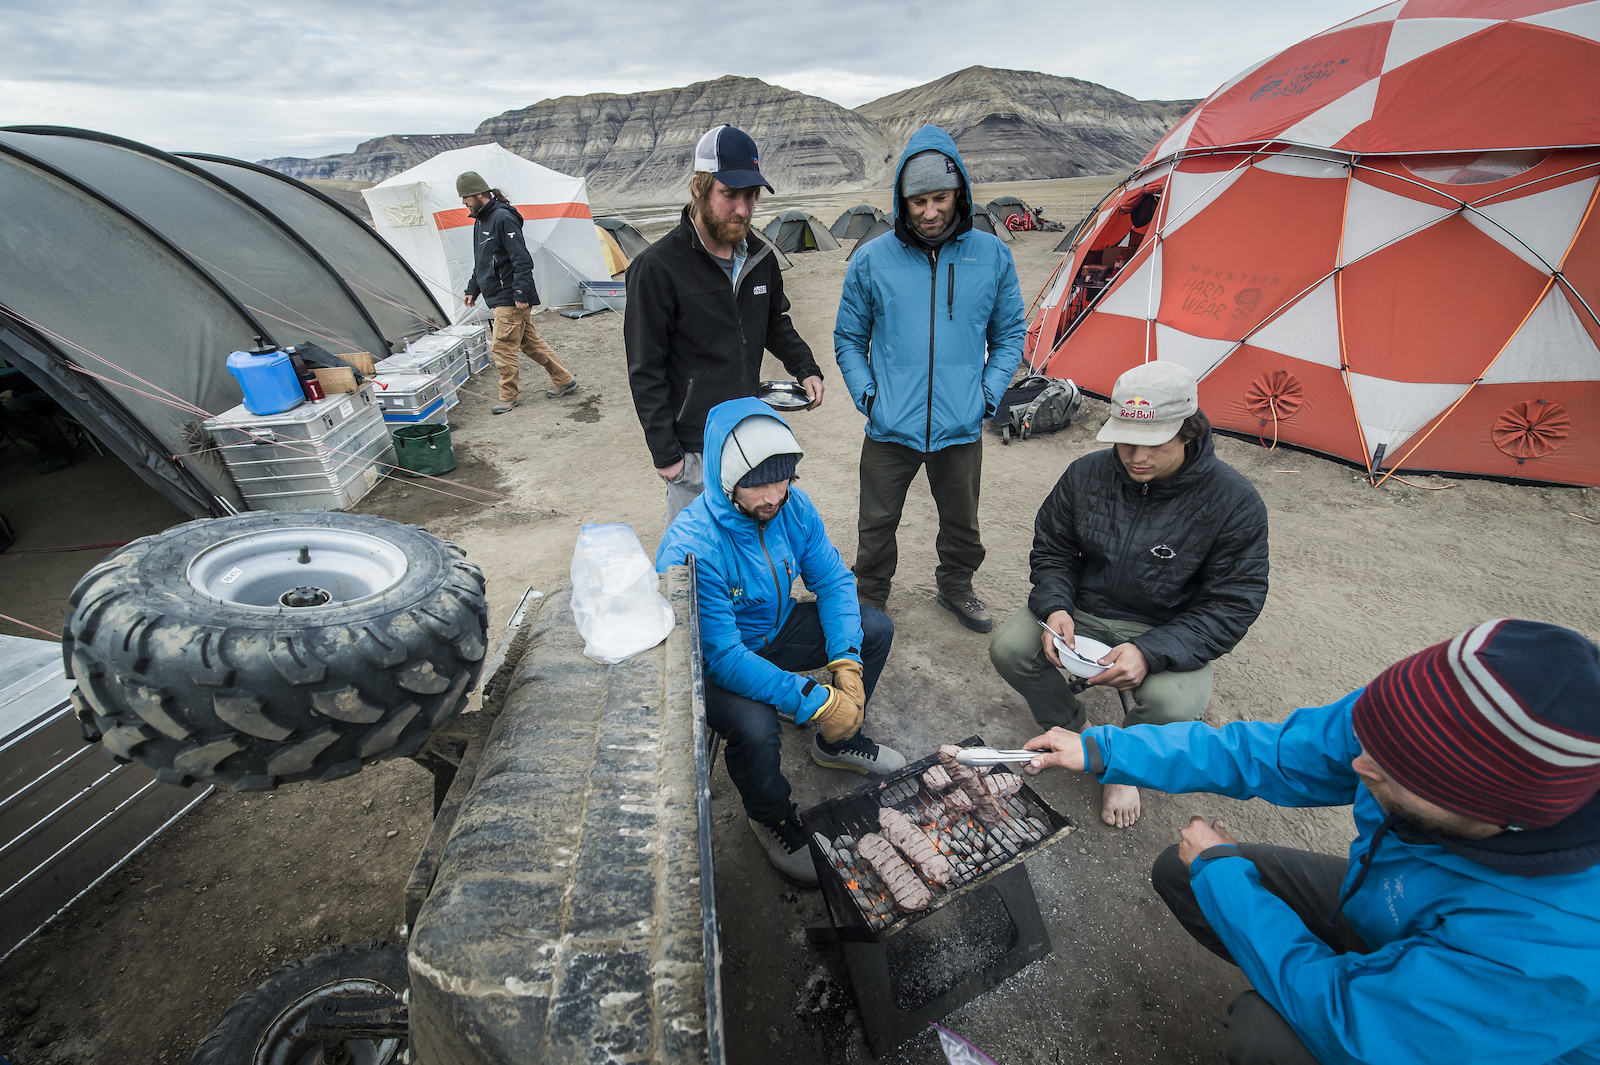 The crew slept in tents with blackout fabric to combat the 24-hour sun. Blake Jorgenson Red Bull Content Pool